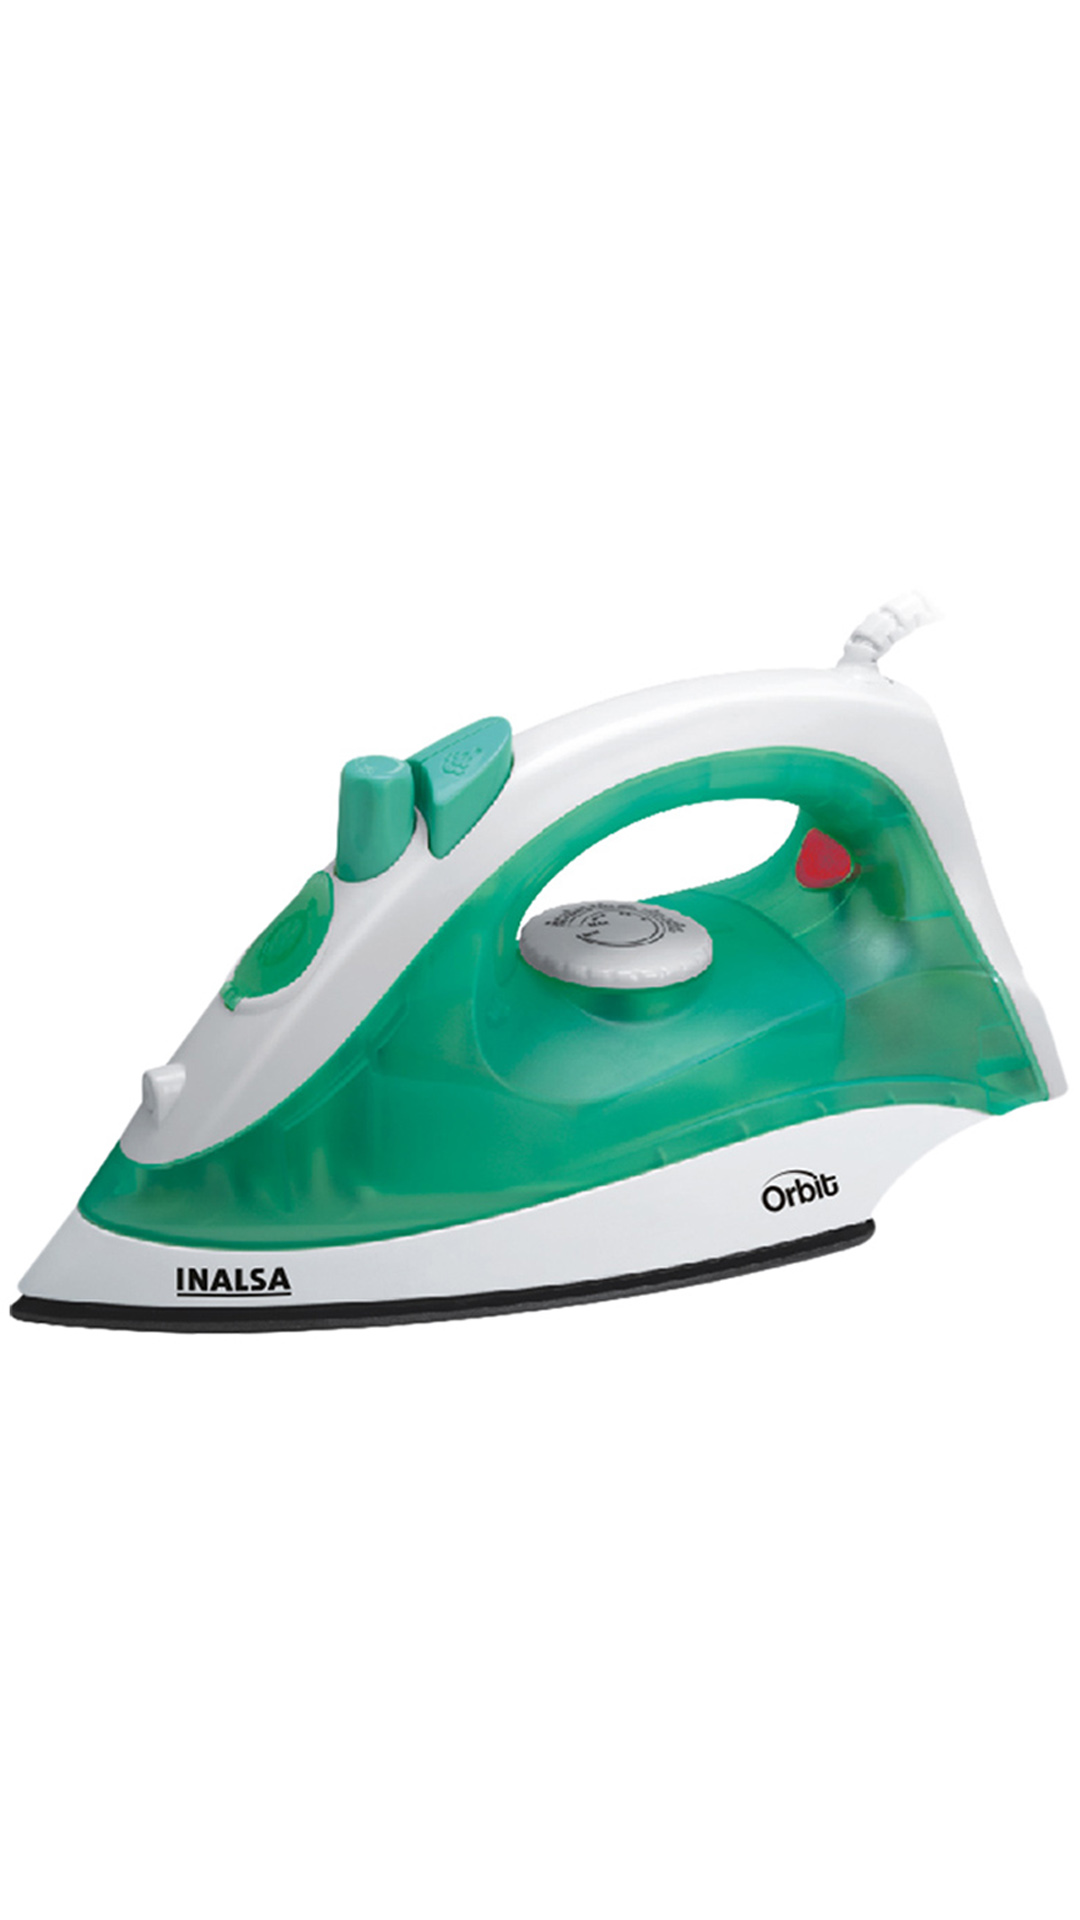 Orbit Steam Iron